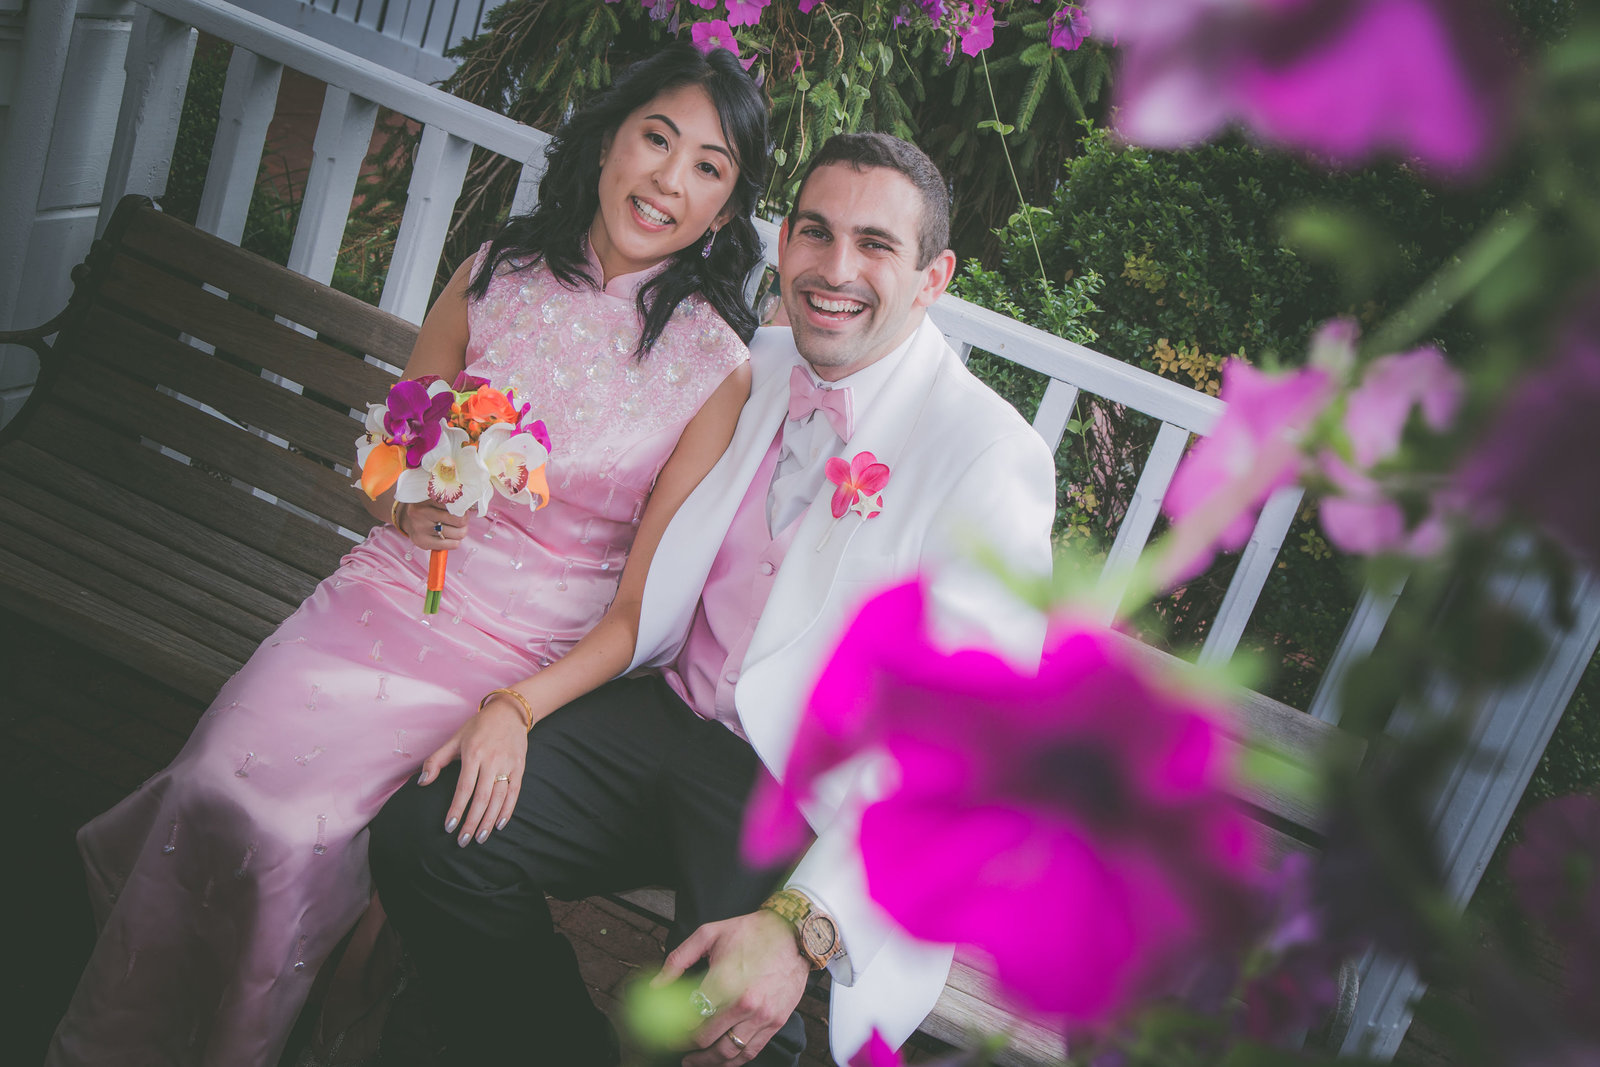 Couple looks at photographer and is framed in pink flowers.